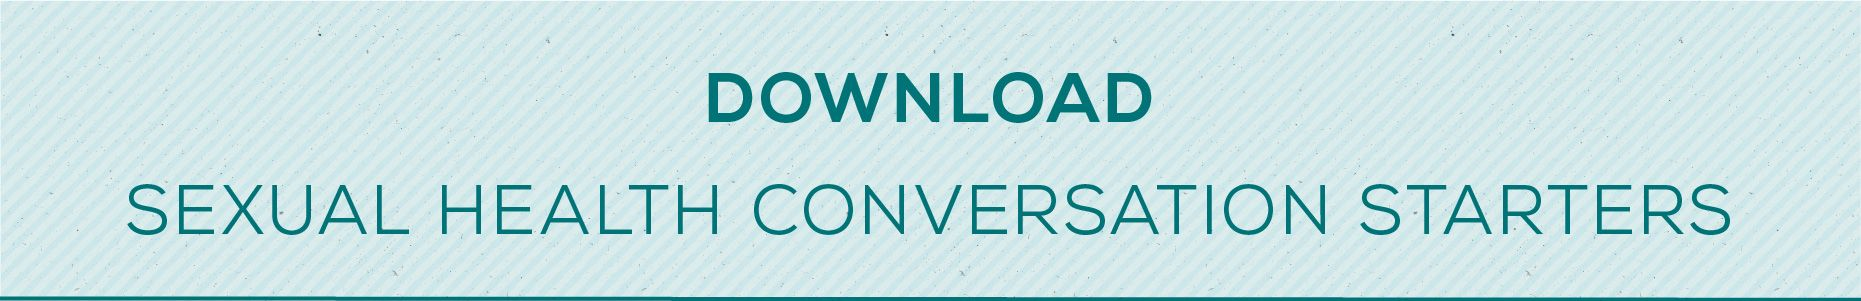 download conversation starters